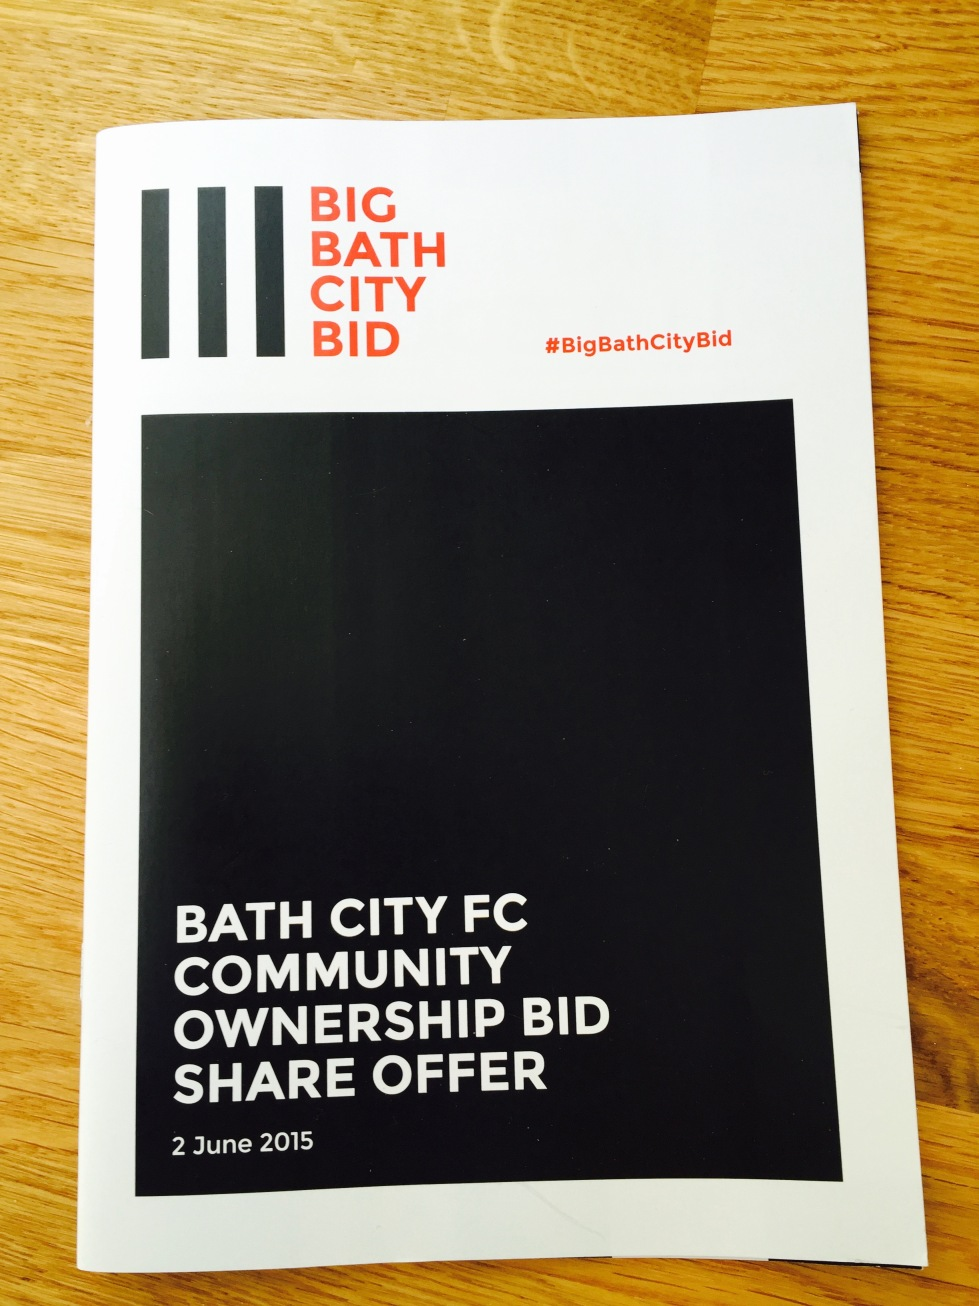 Big Bath City Bid